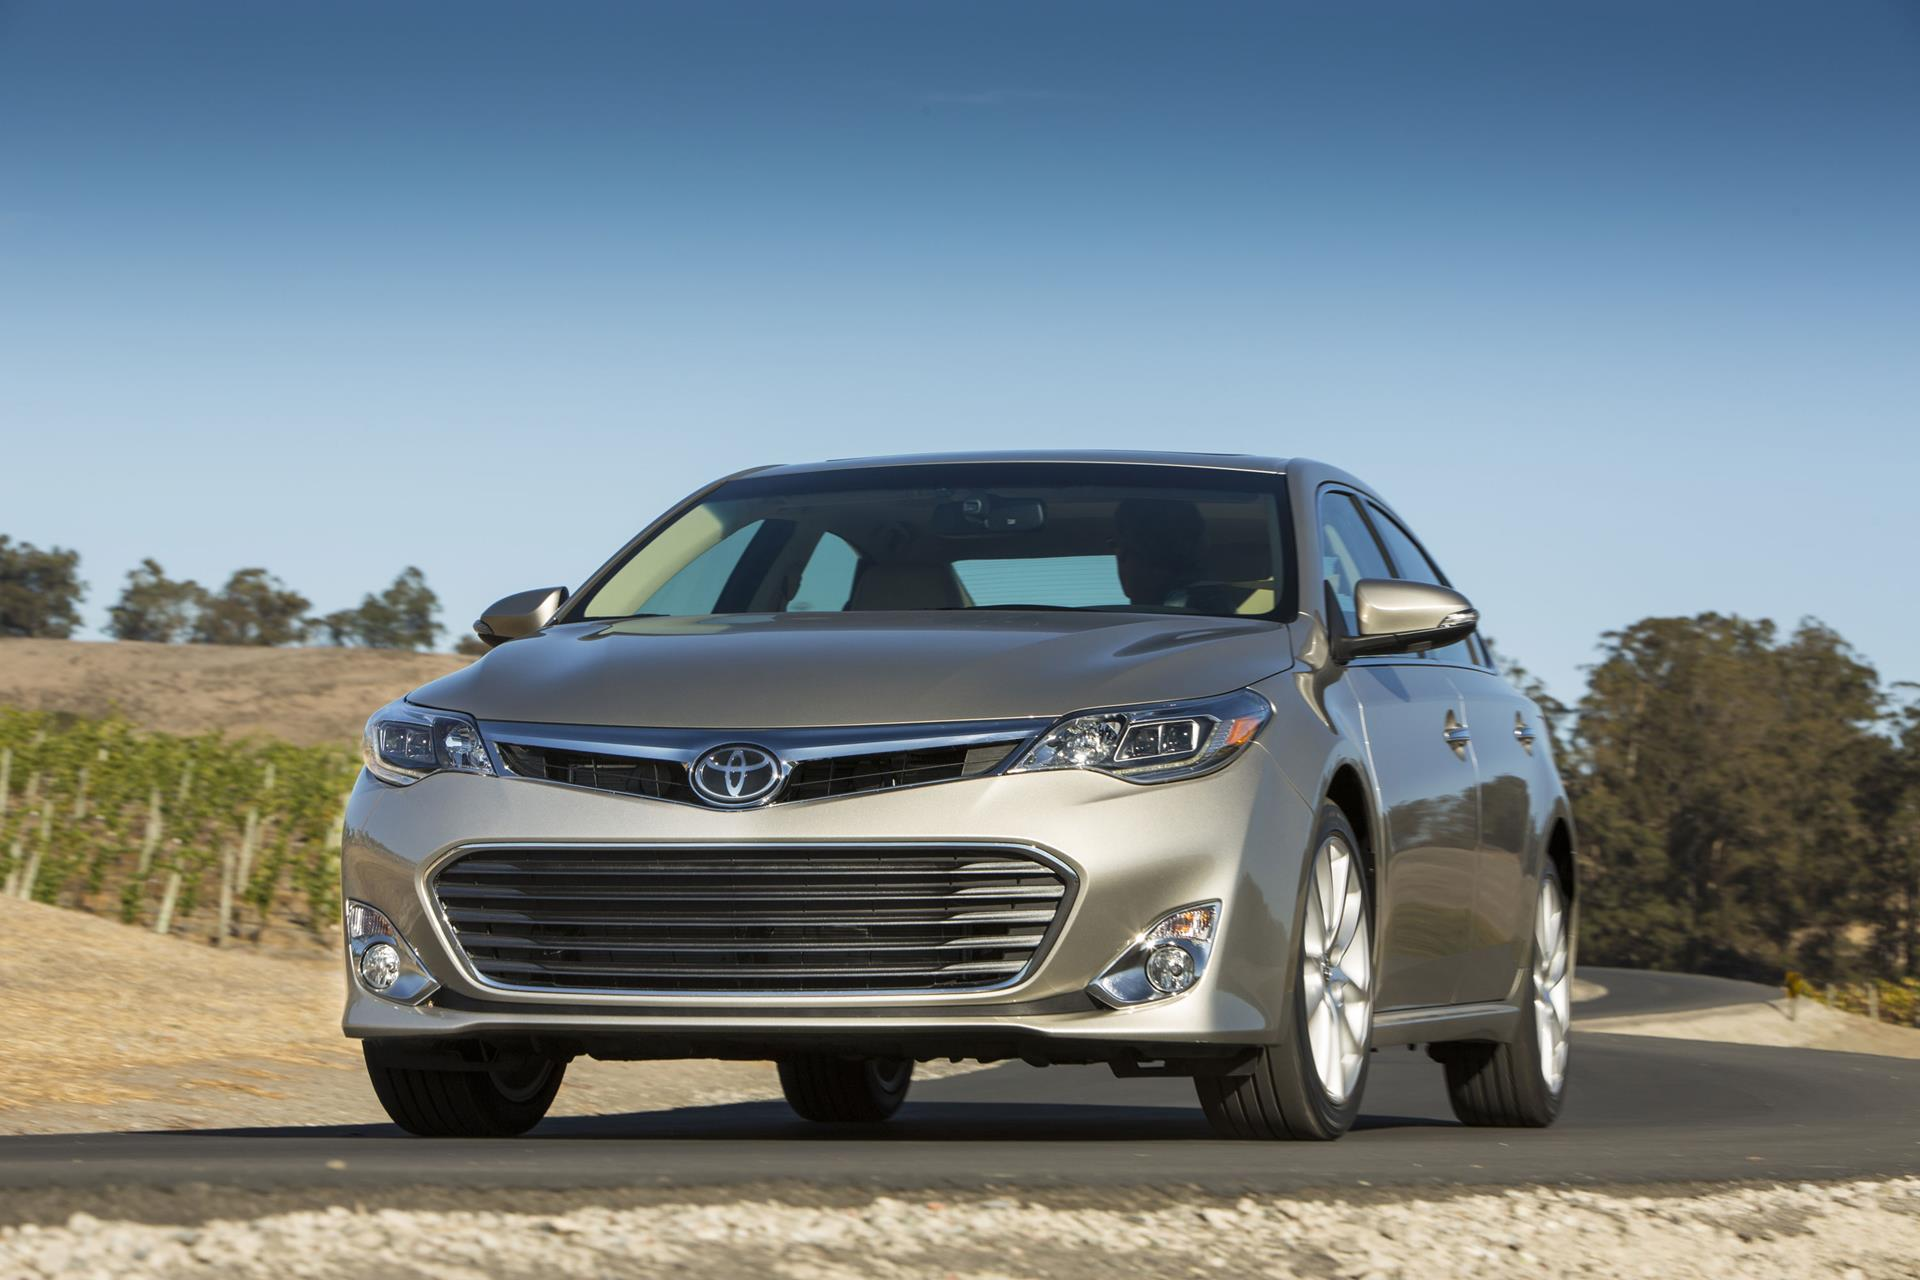 2015 Toyota Avalon News and Information | conceptcarz.com